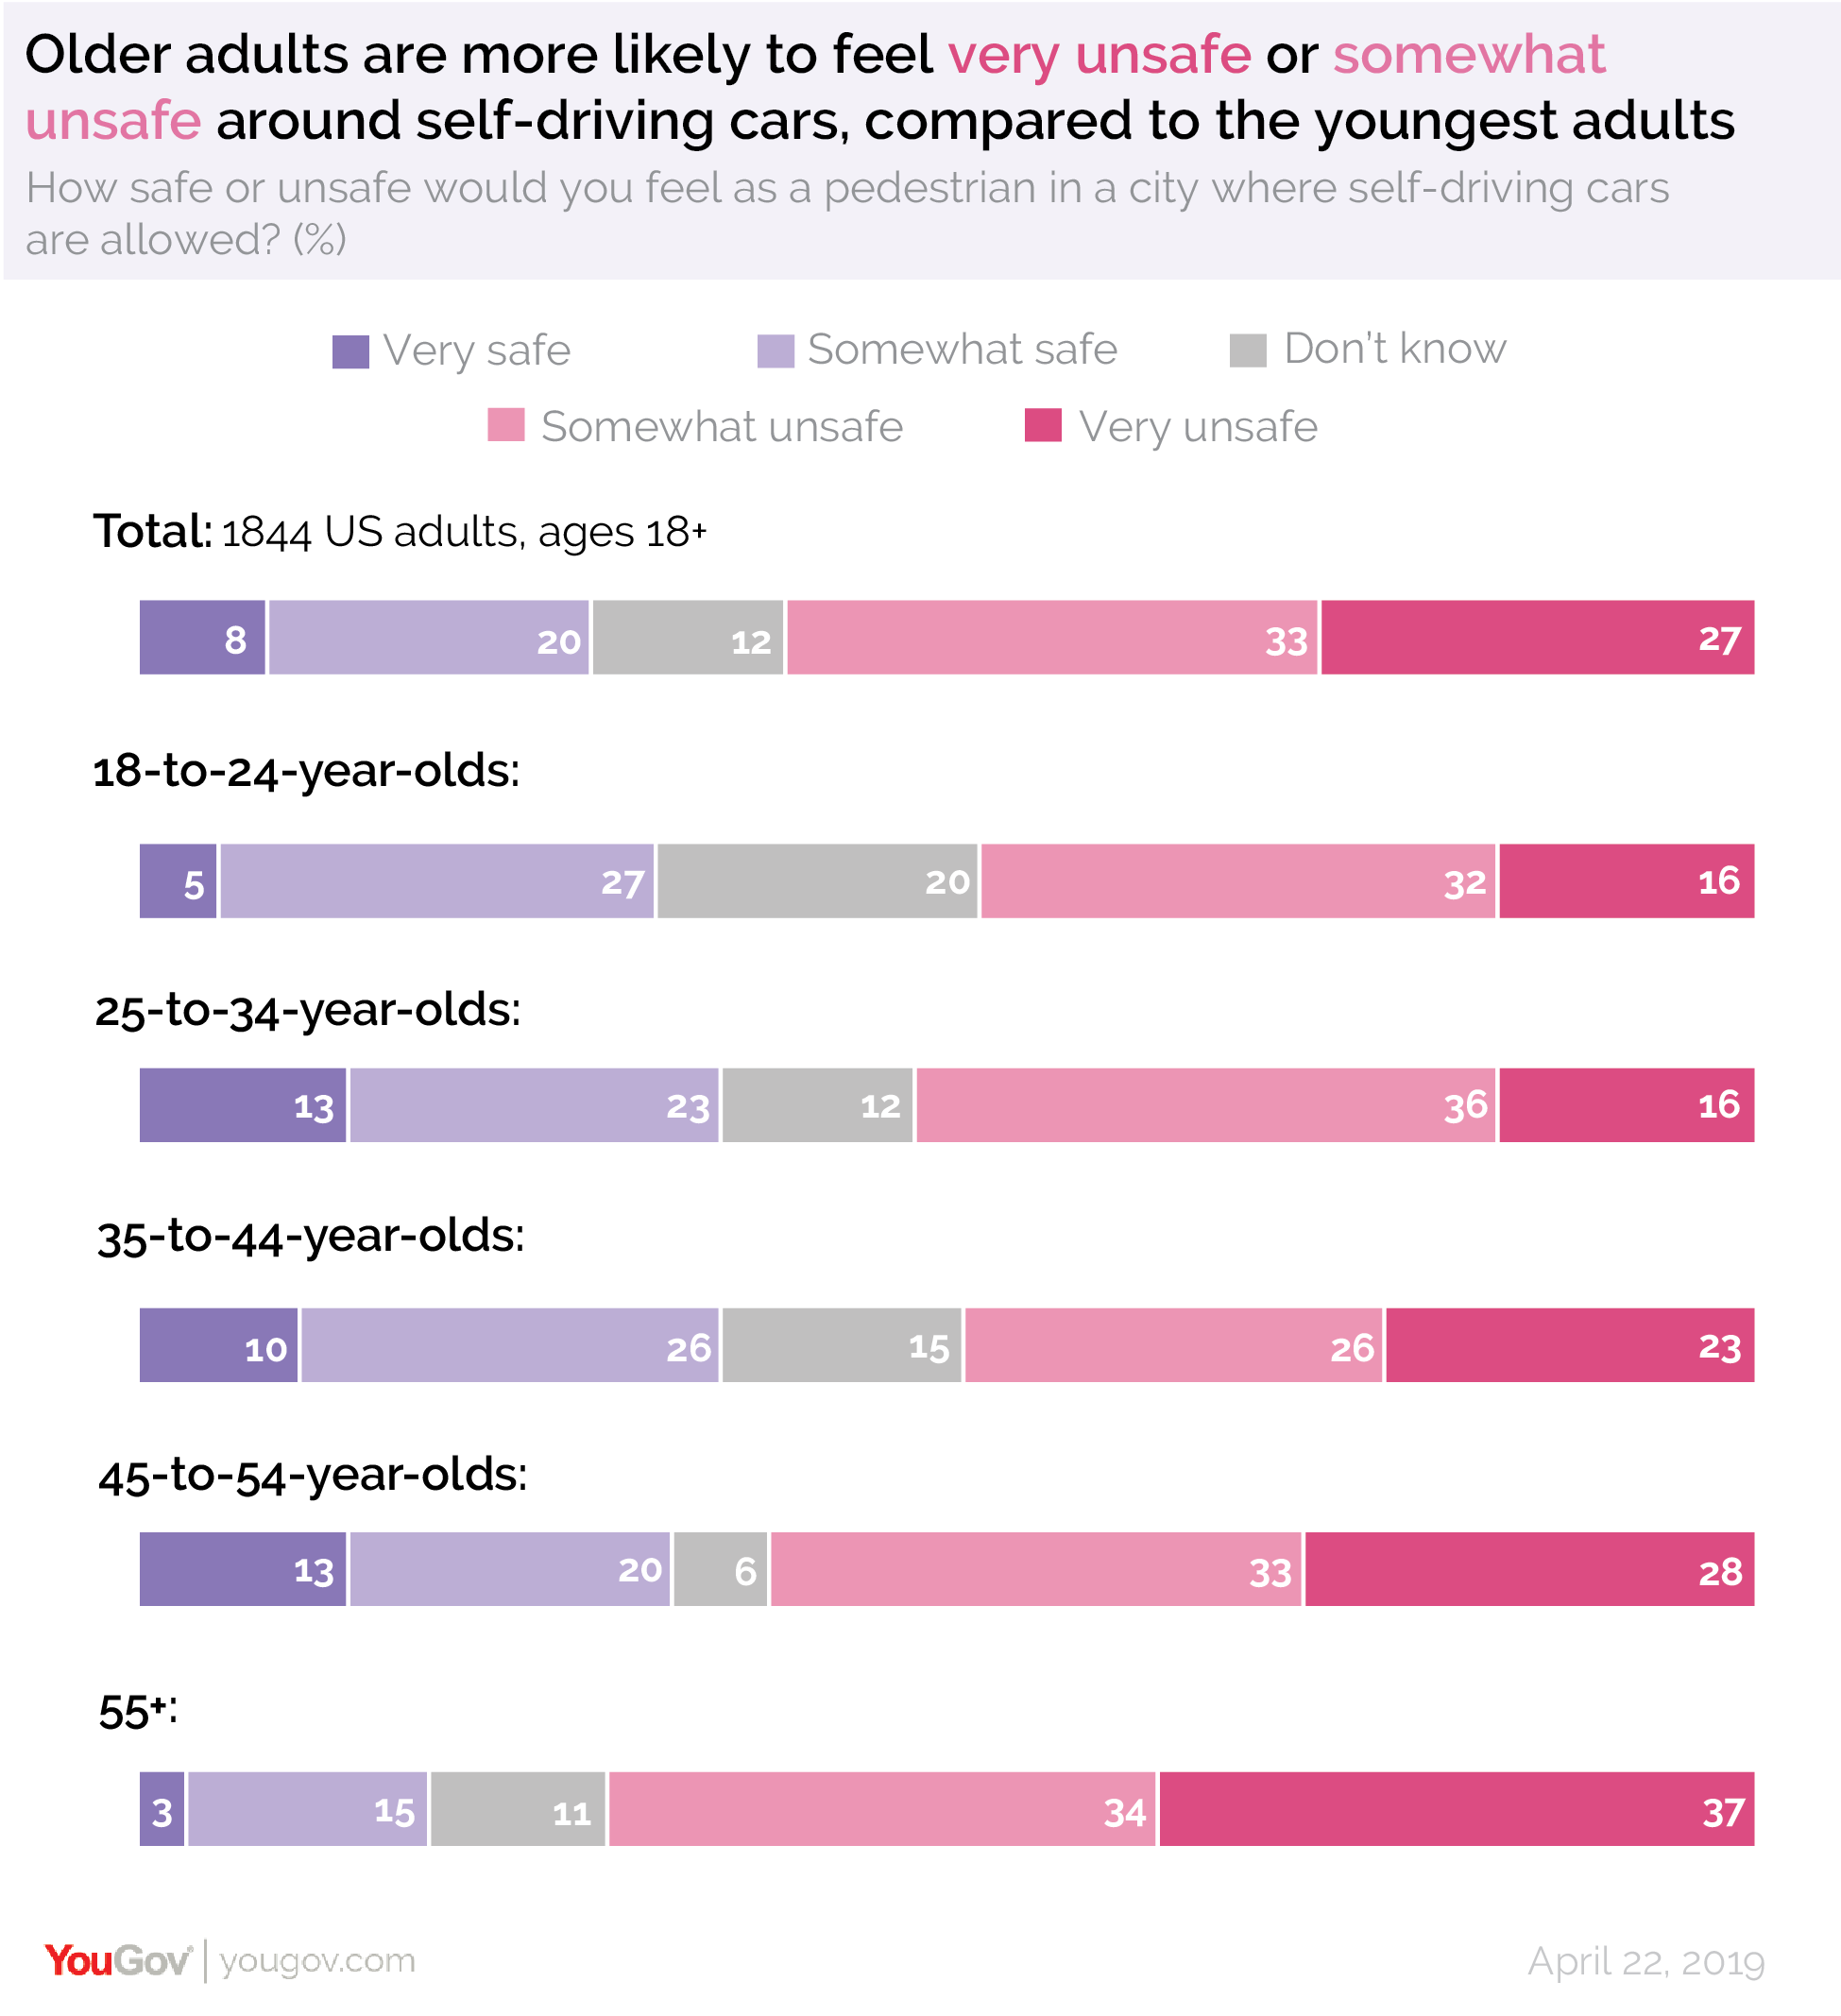 Older adults are more likely to feel very unsafe or somewhat unsafe around self-driving cars, compared to the youngest adults